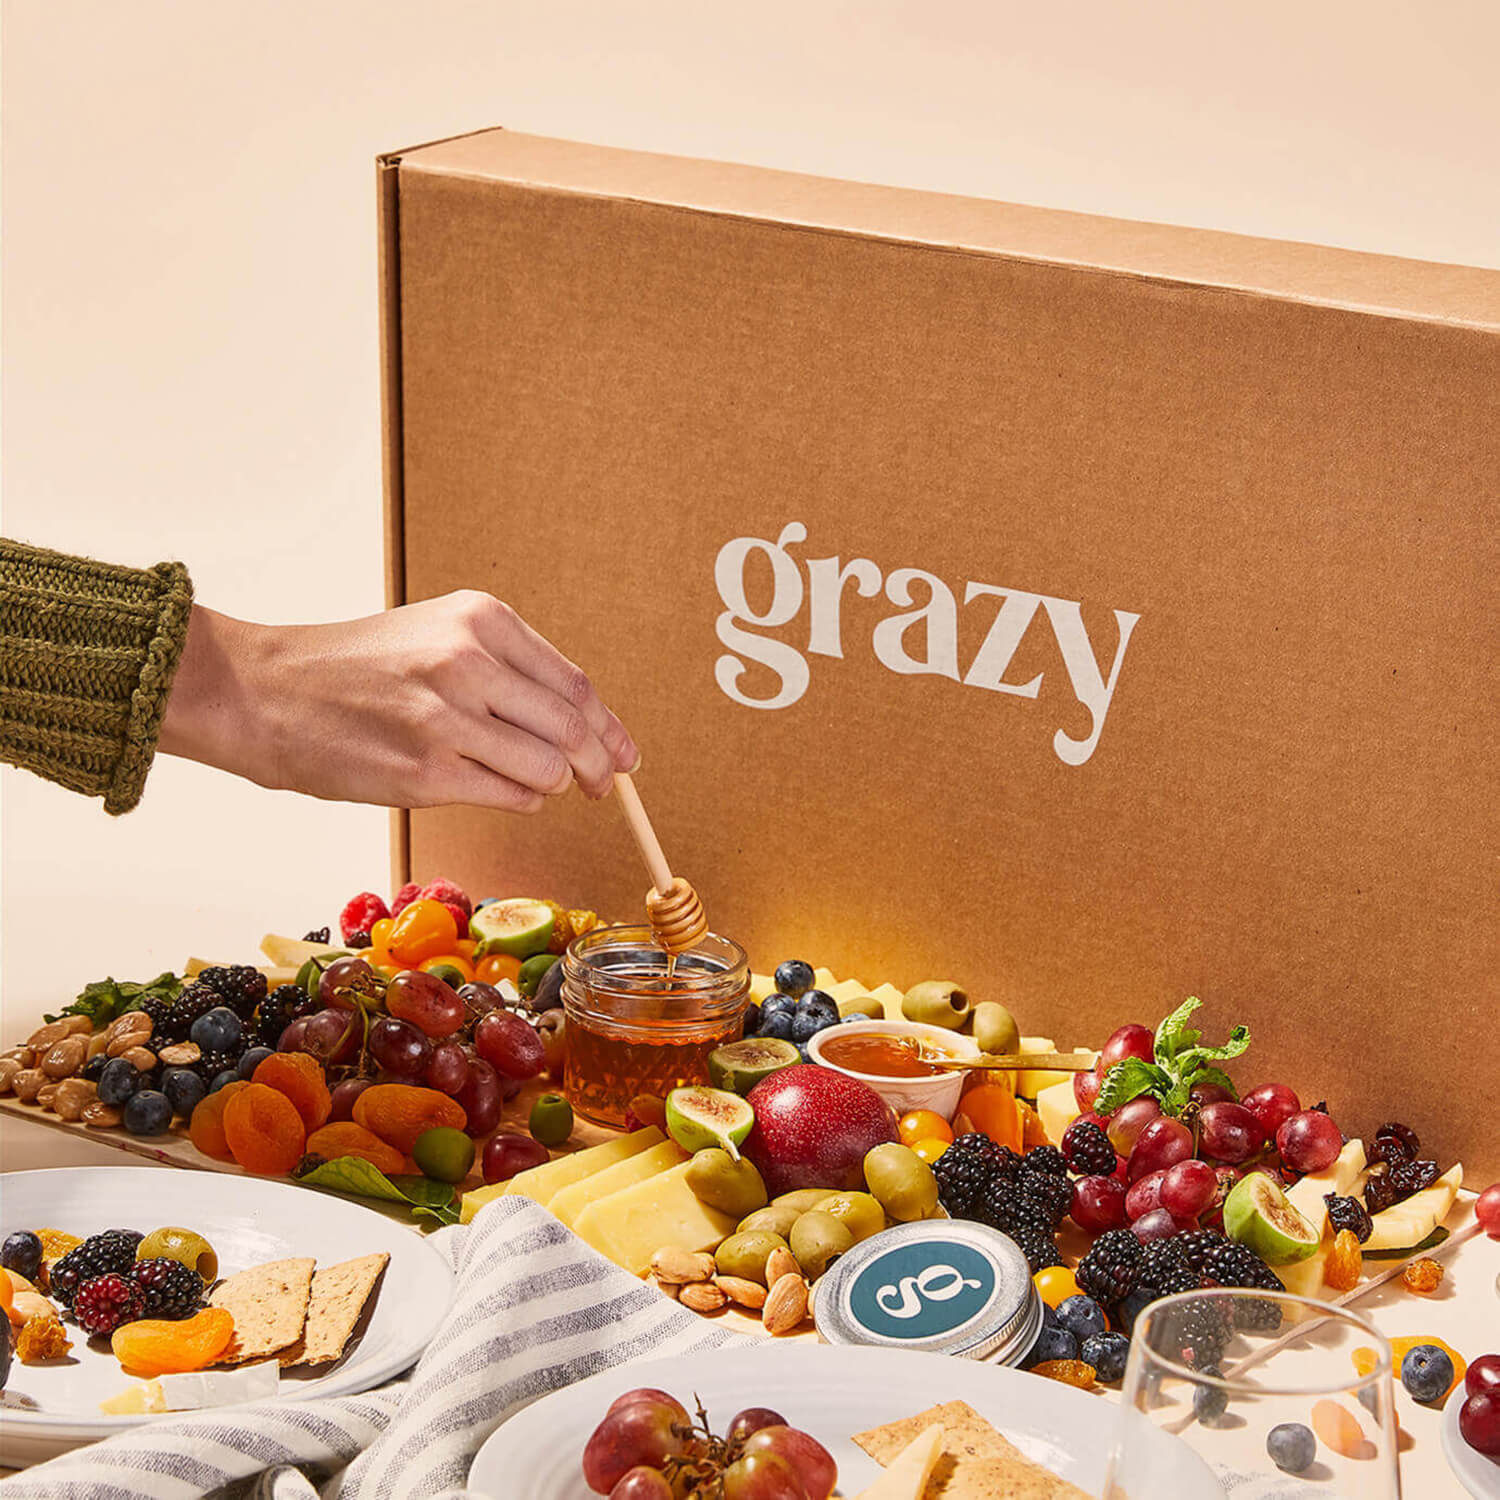 Angled view of a large Grazy box containing cheeses and fruits